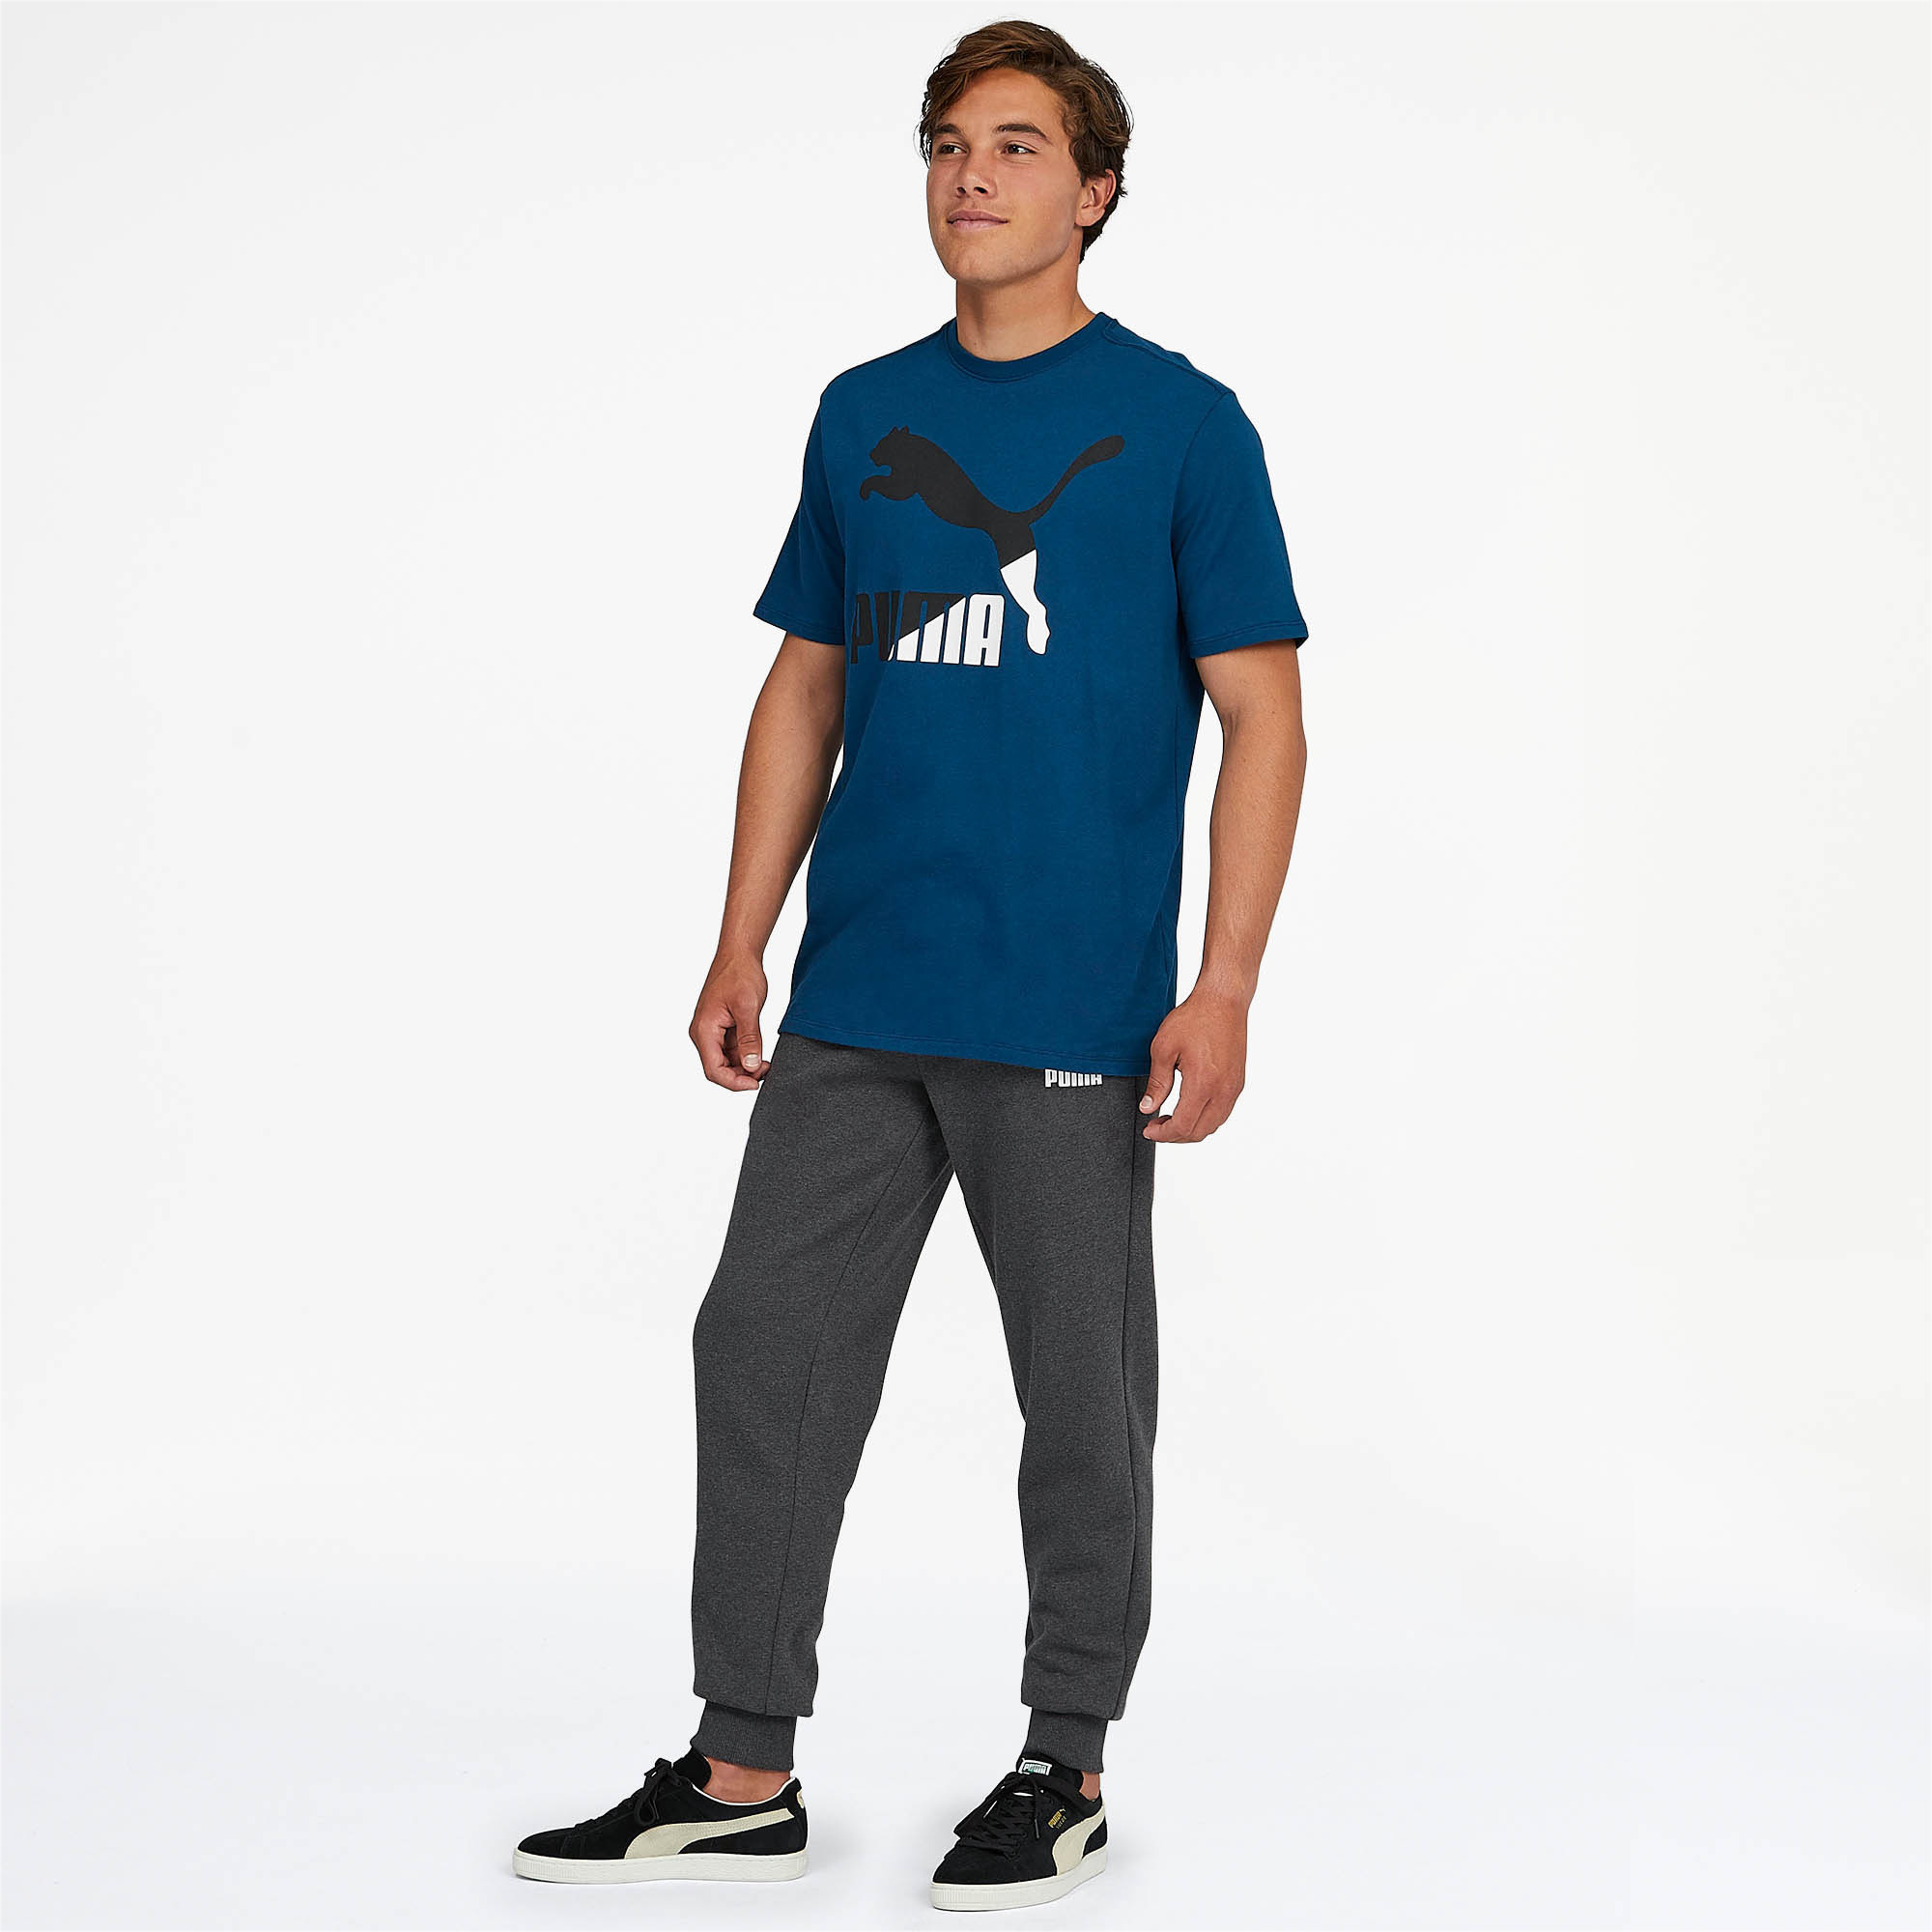 PUMA-Essentials-Men-039-s-Fleece-Knit-Pants-Men-Knitted-Pants-Basics thumbnail 18